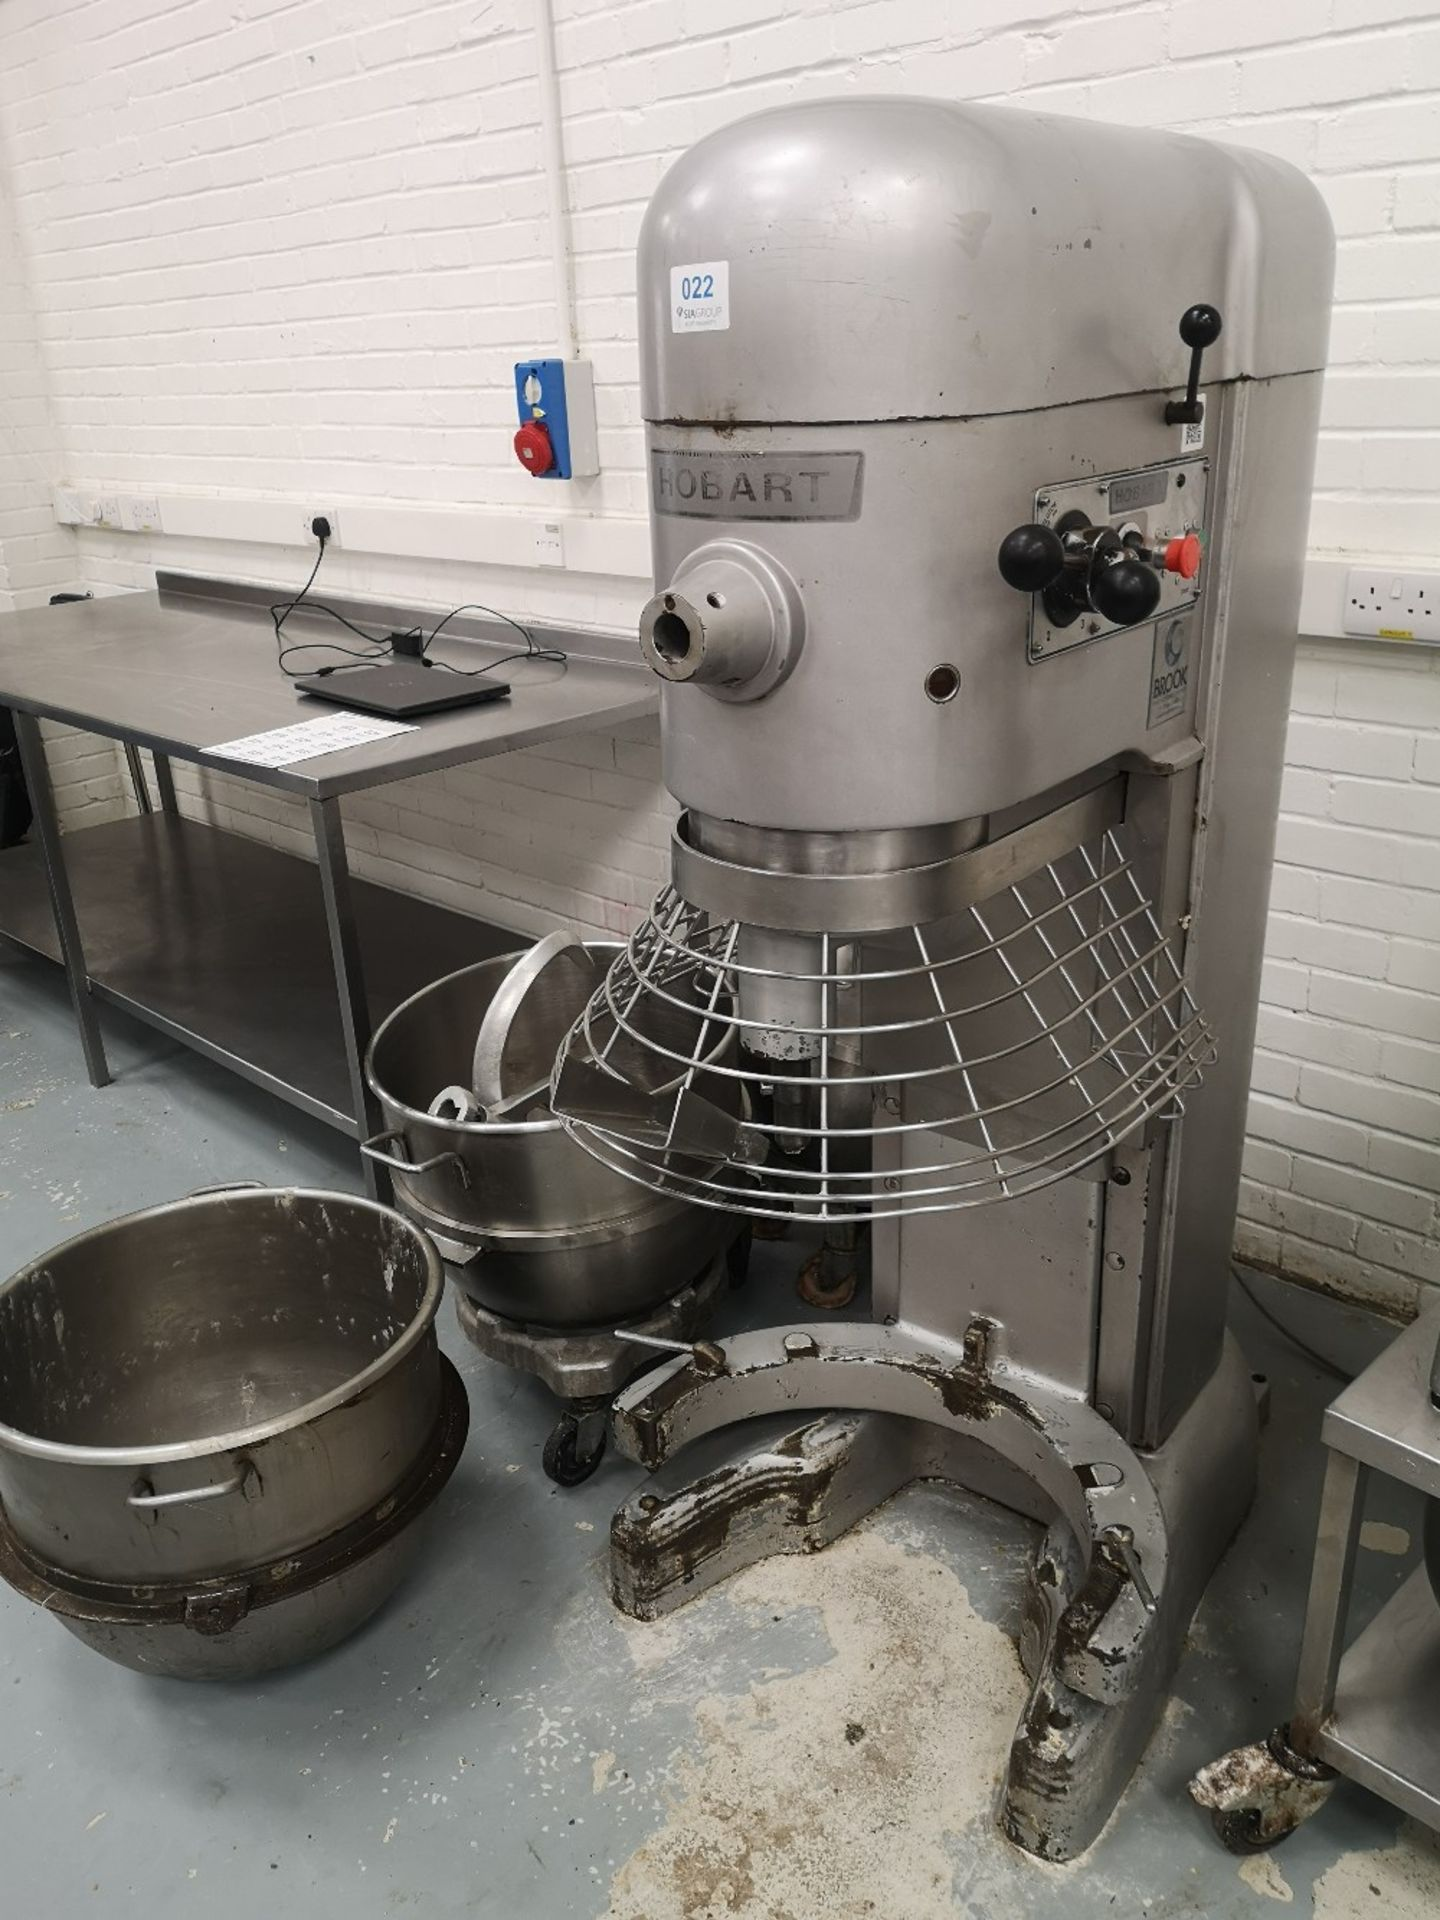 Hobart M802 80 QRT Planetary Mixer with (3) Mixing Bowls - Image 2 of 8